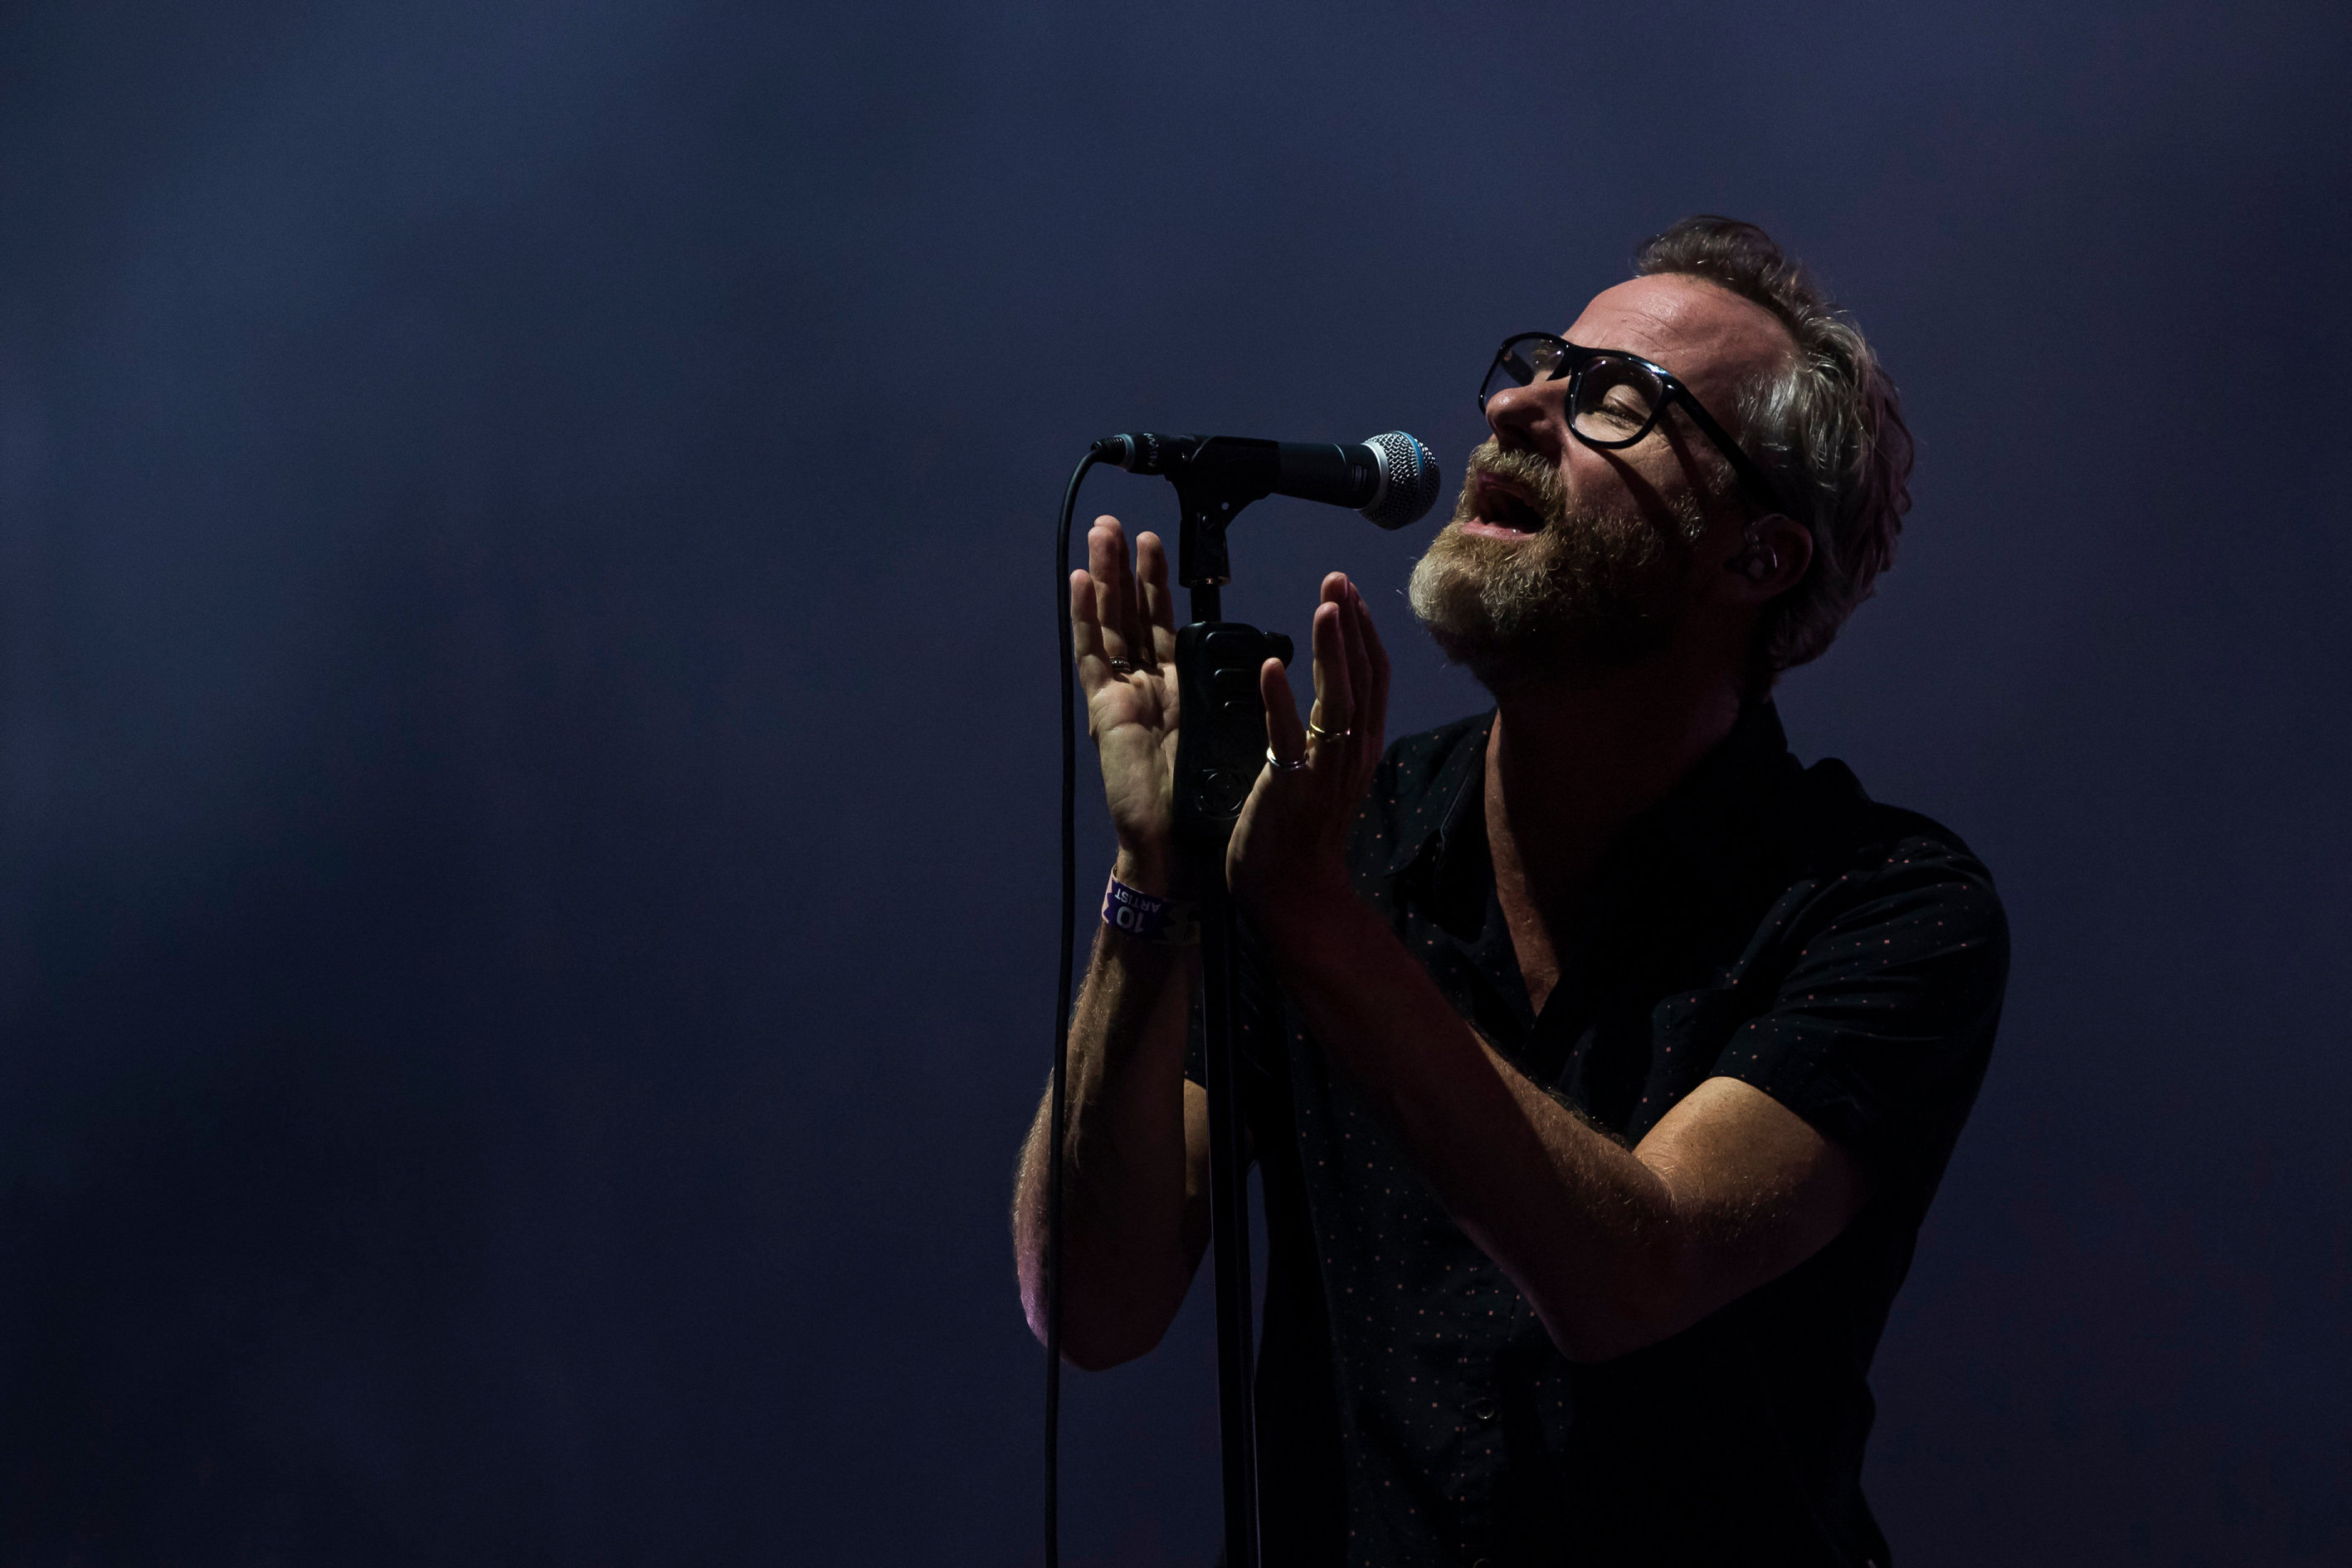 The National, Kurt Vile Contribute Covers to 'Songs For Australia' Benefit Album